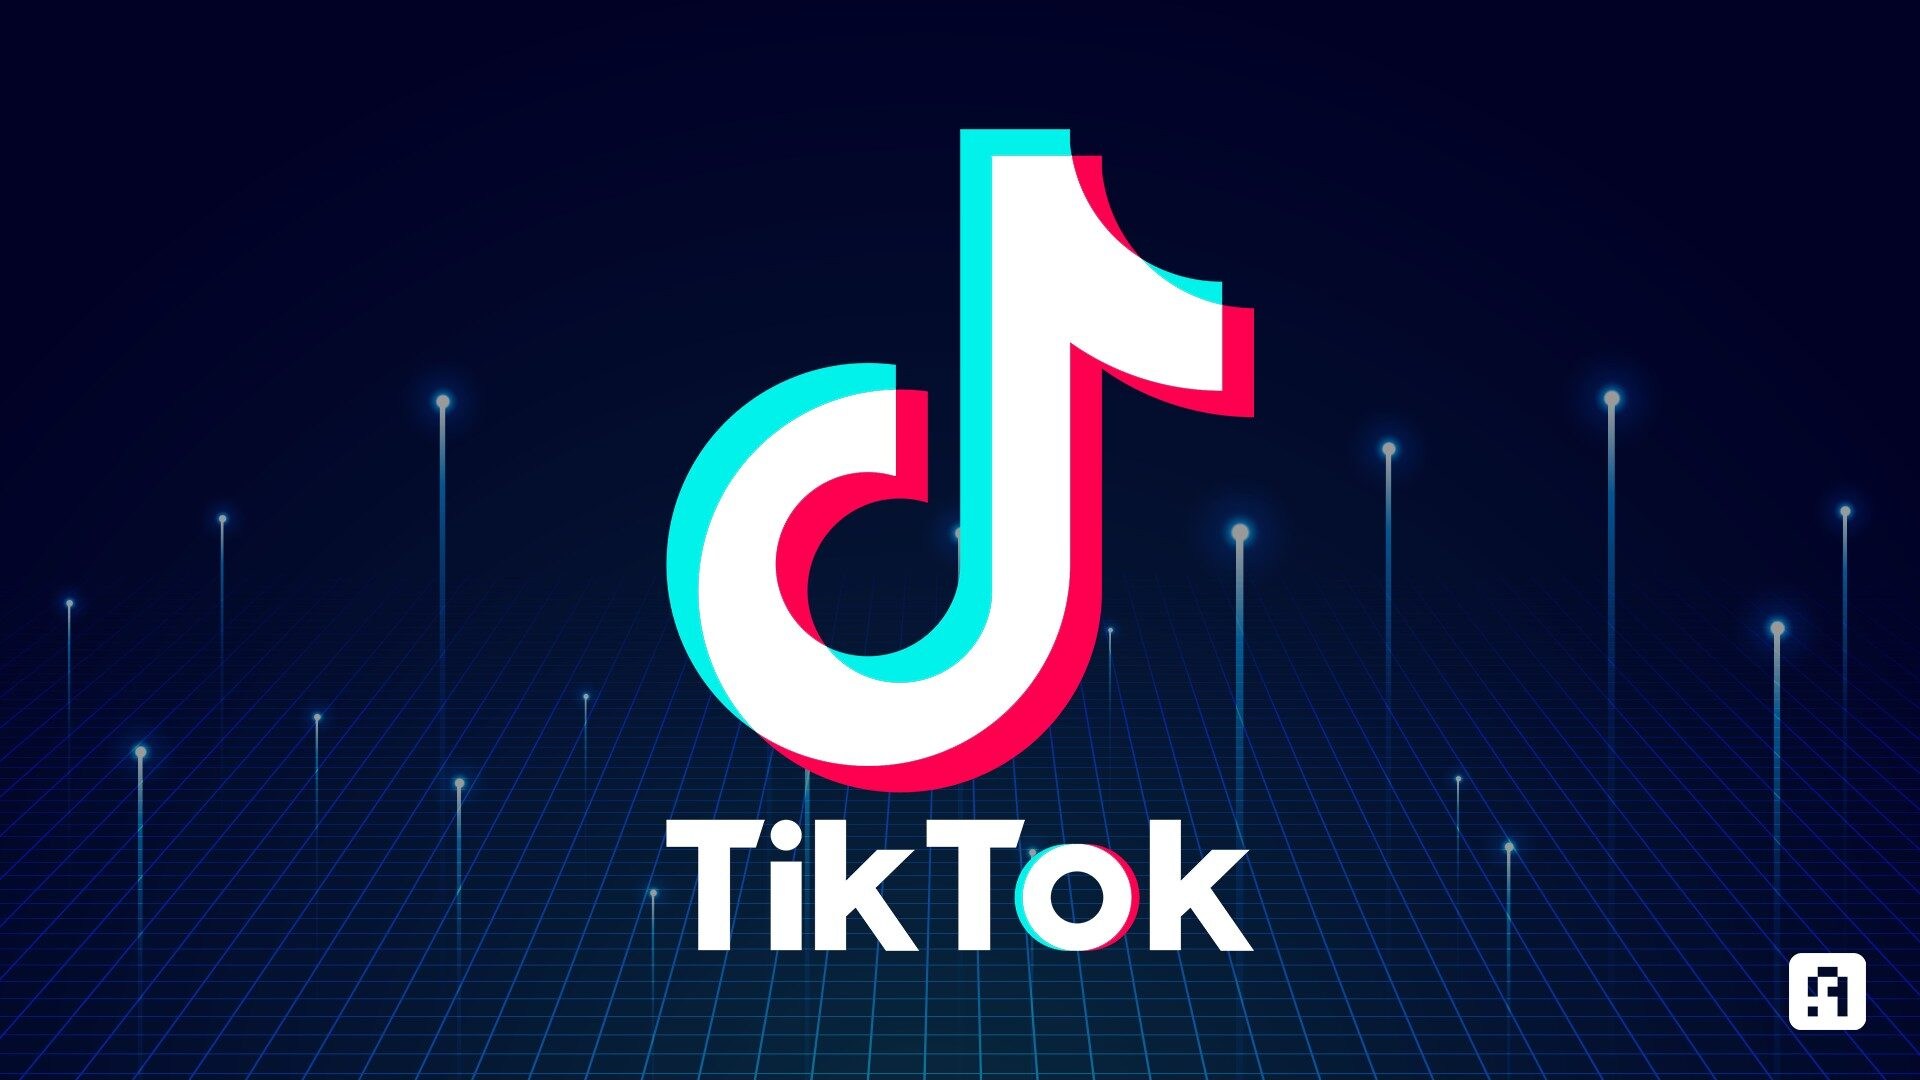 Tiktok تيك توك - ByteDance Generic Photos